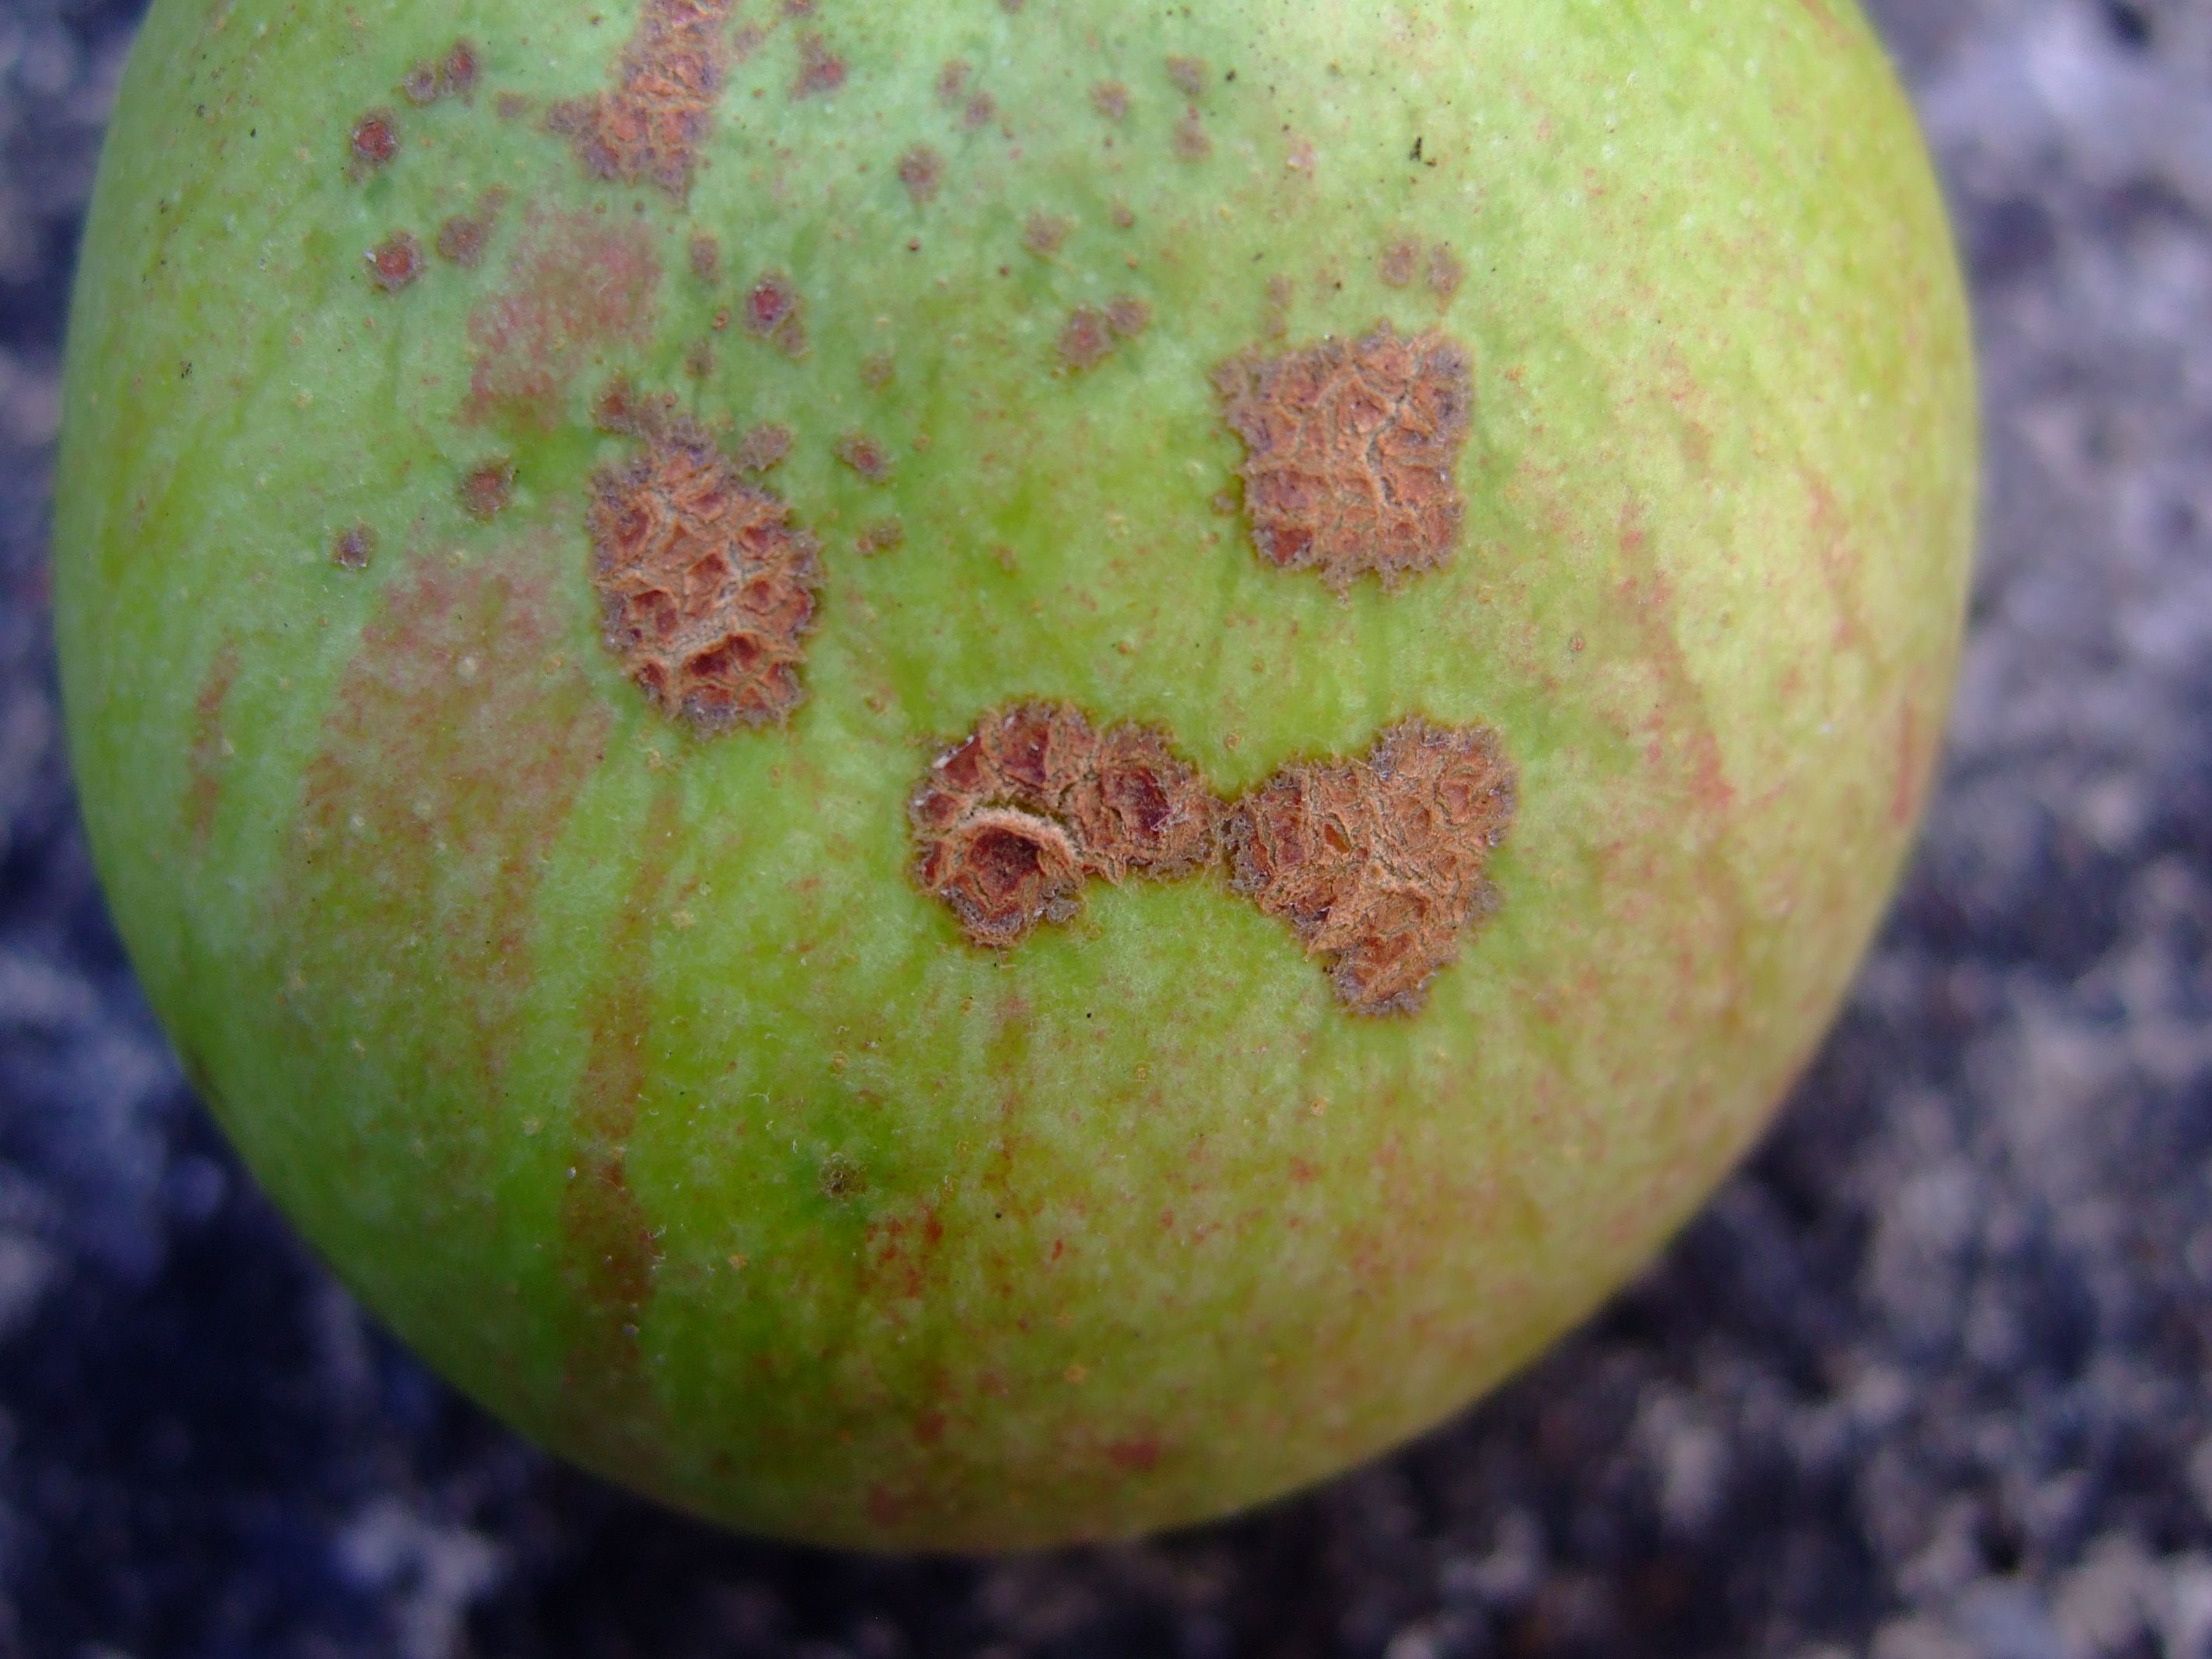 Fruit Diseases In Apple